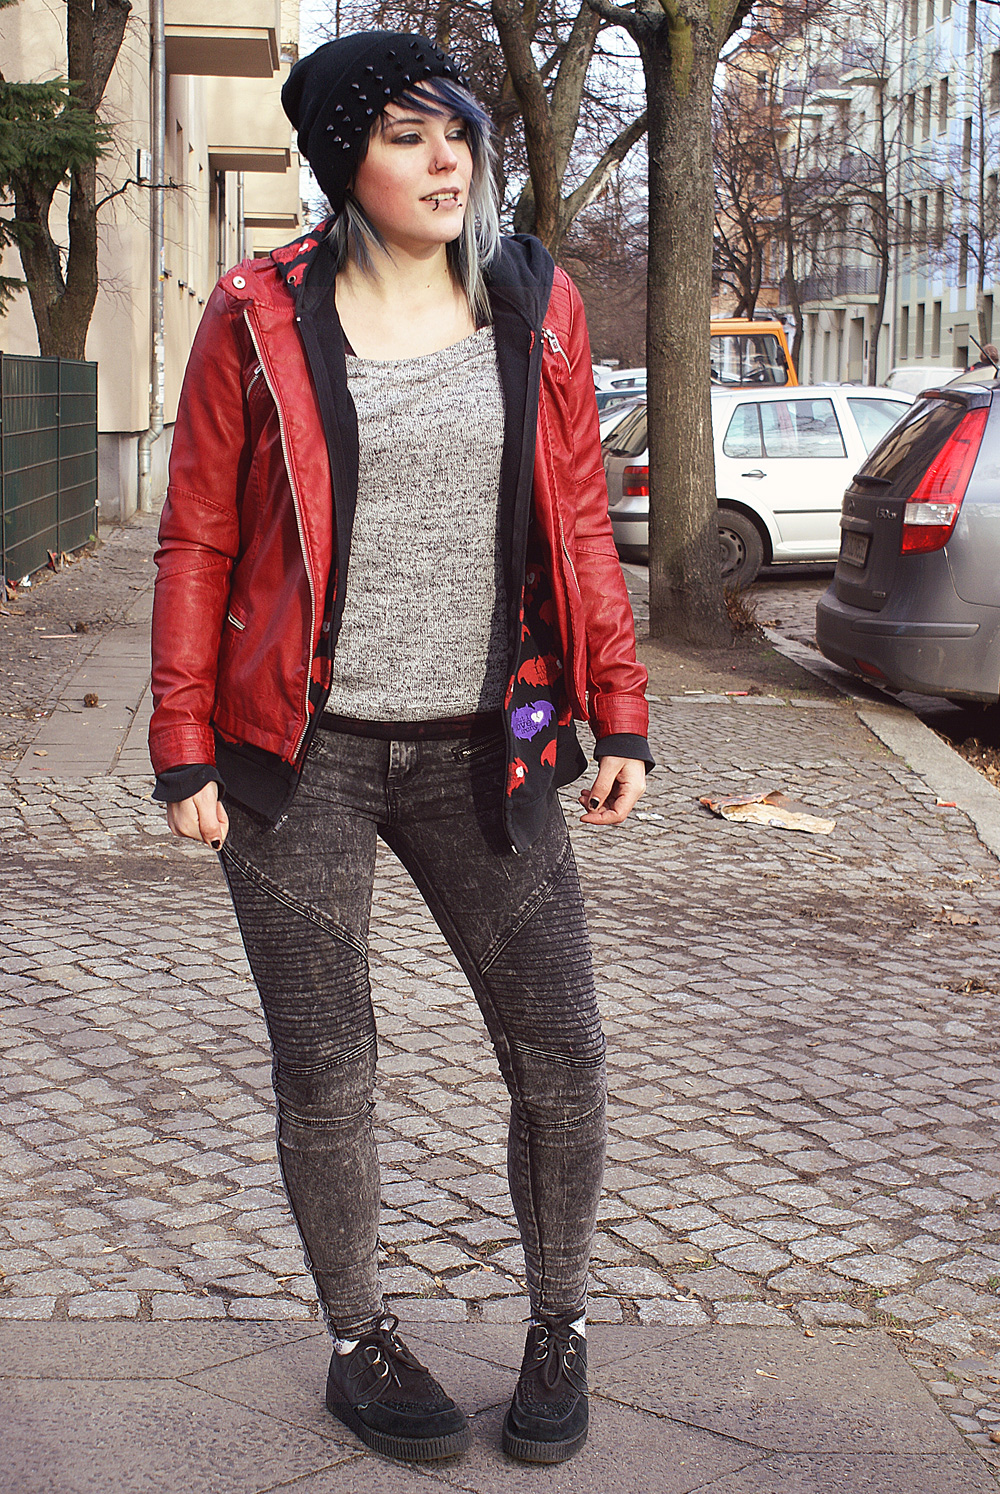 outfit, altfashion, alternative, punk, street, grey, divided, h&m, moto, jeans, biker, boots, street super shoes, sacha, clandestine industries, fall out boy, pete wentz, i love irony, creepers, underground, creeper, rot, red, lederjacke, beanie, nieten, spikes, winter, strick, herbst, knit, all over